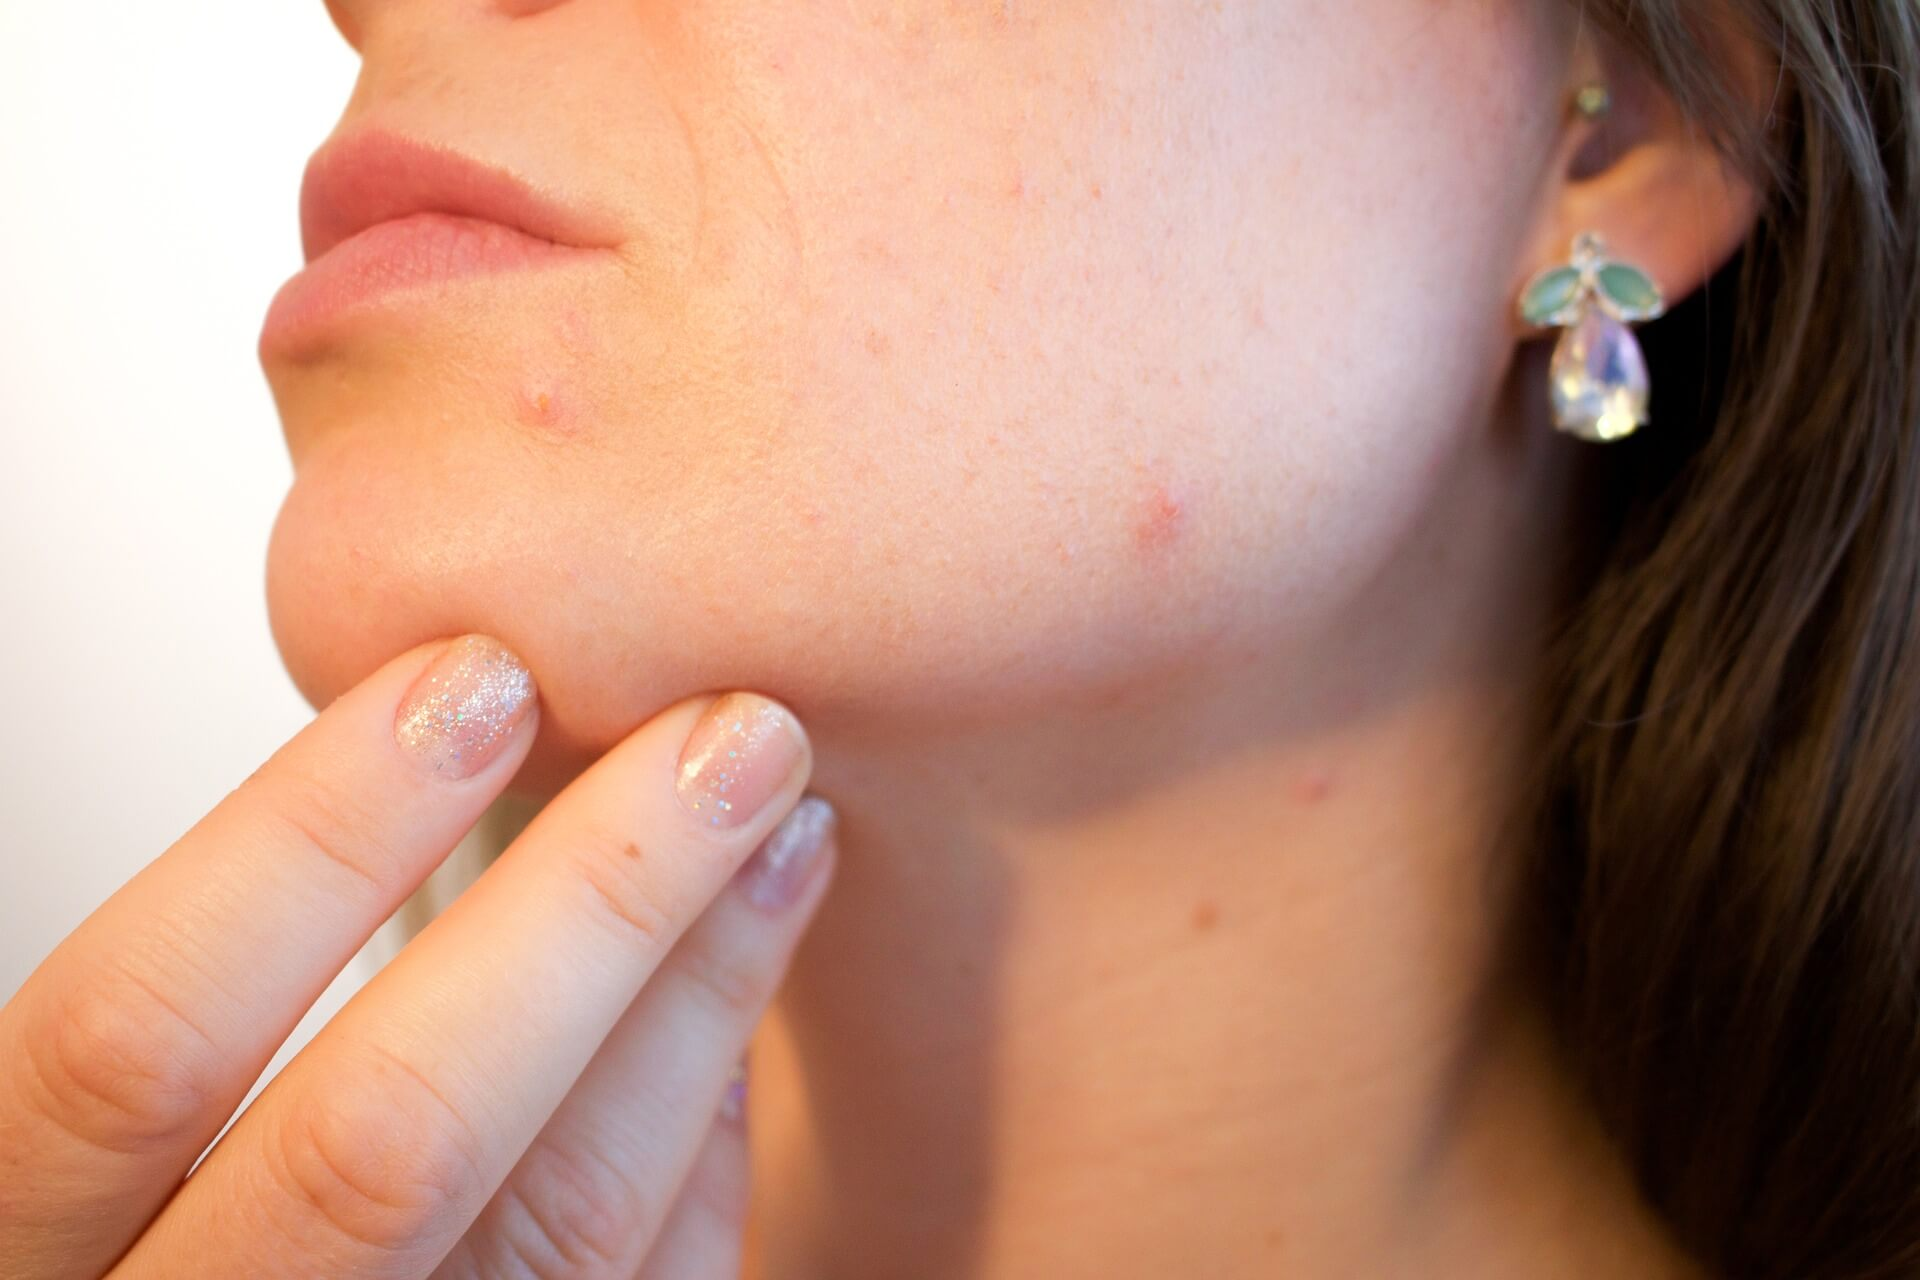 Checking Skin for Acne and Other Anomalies